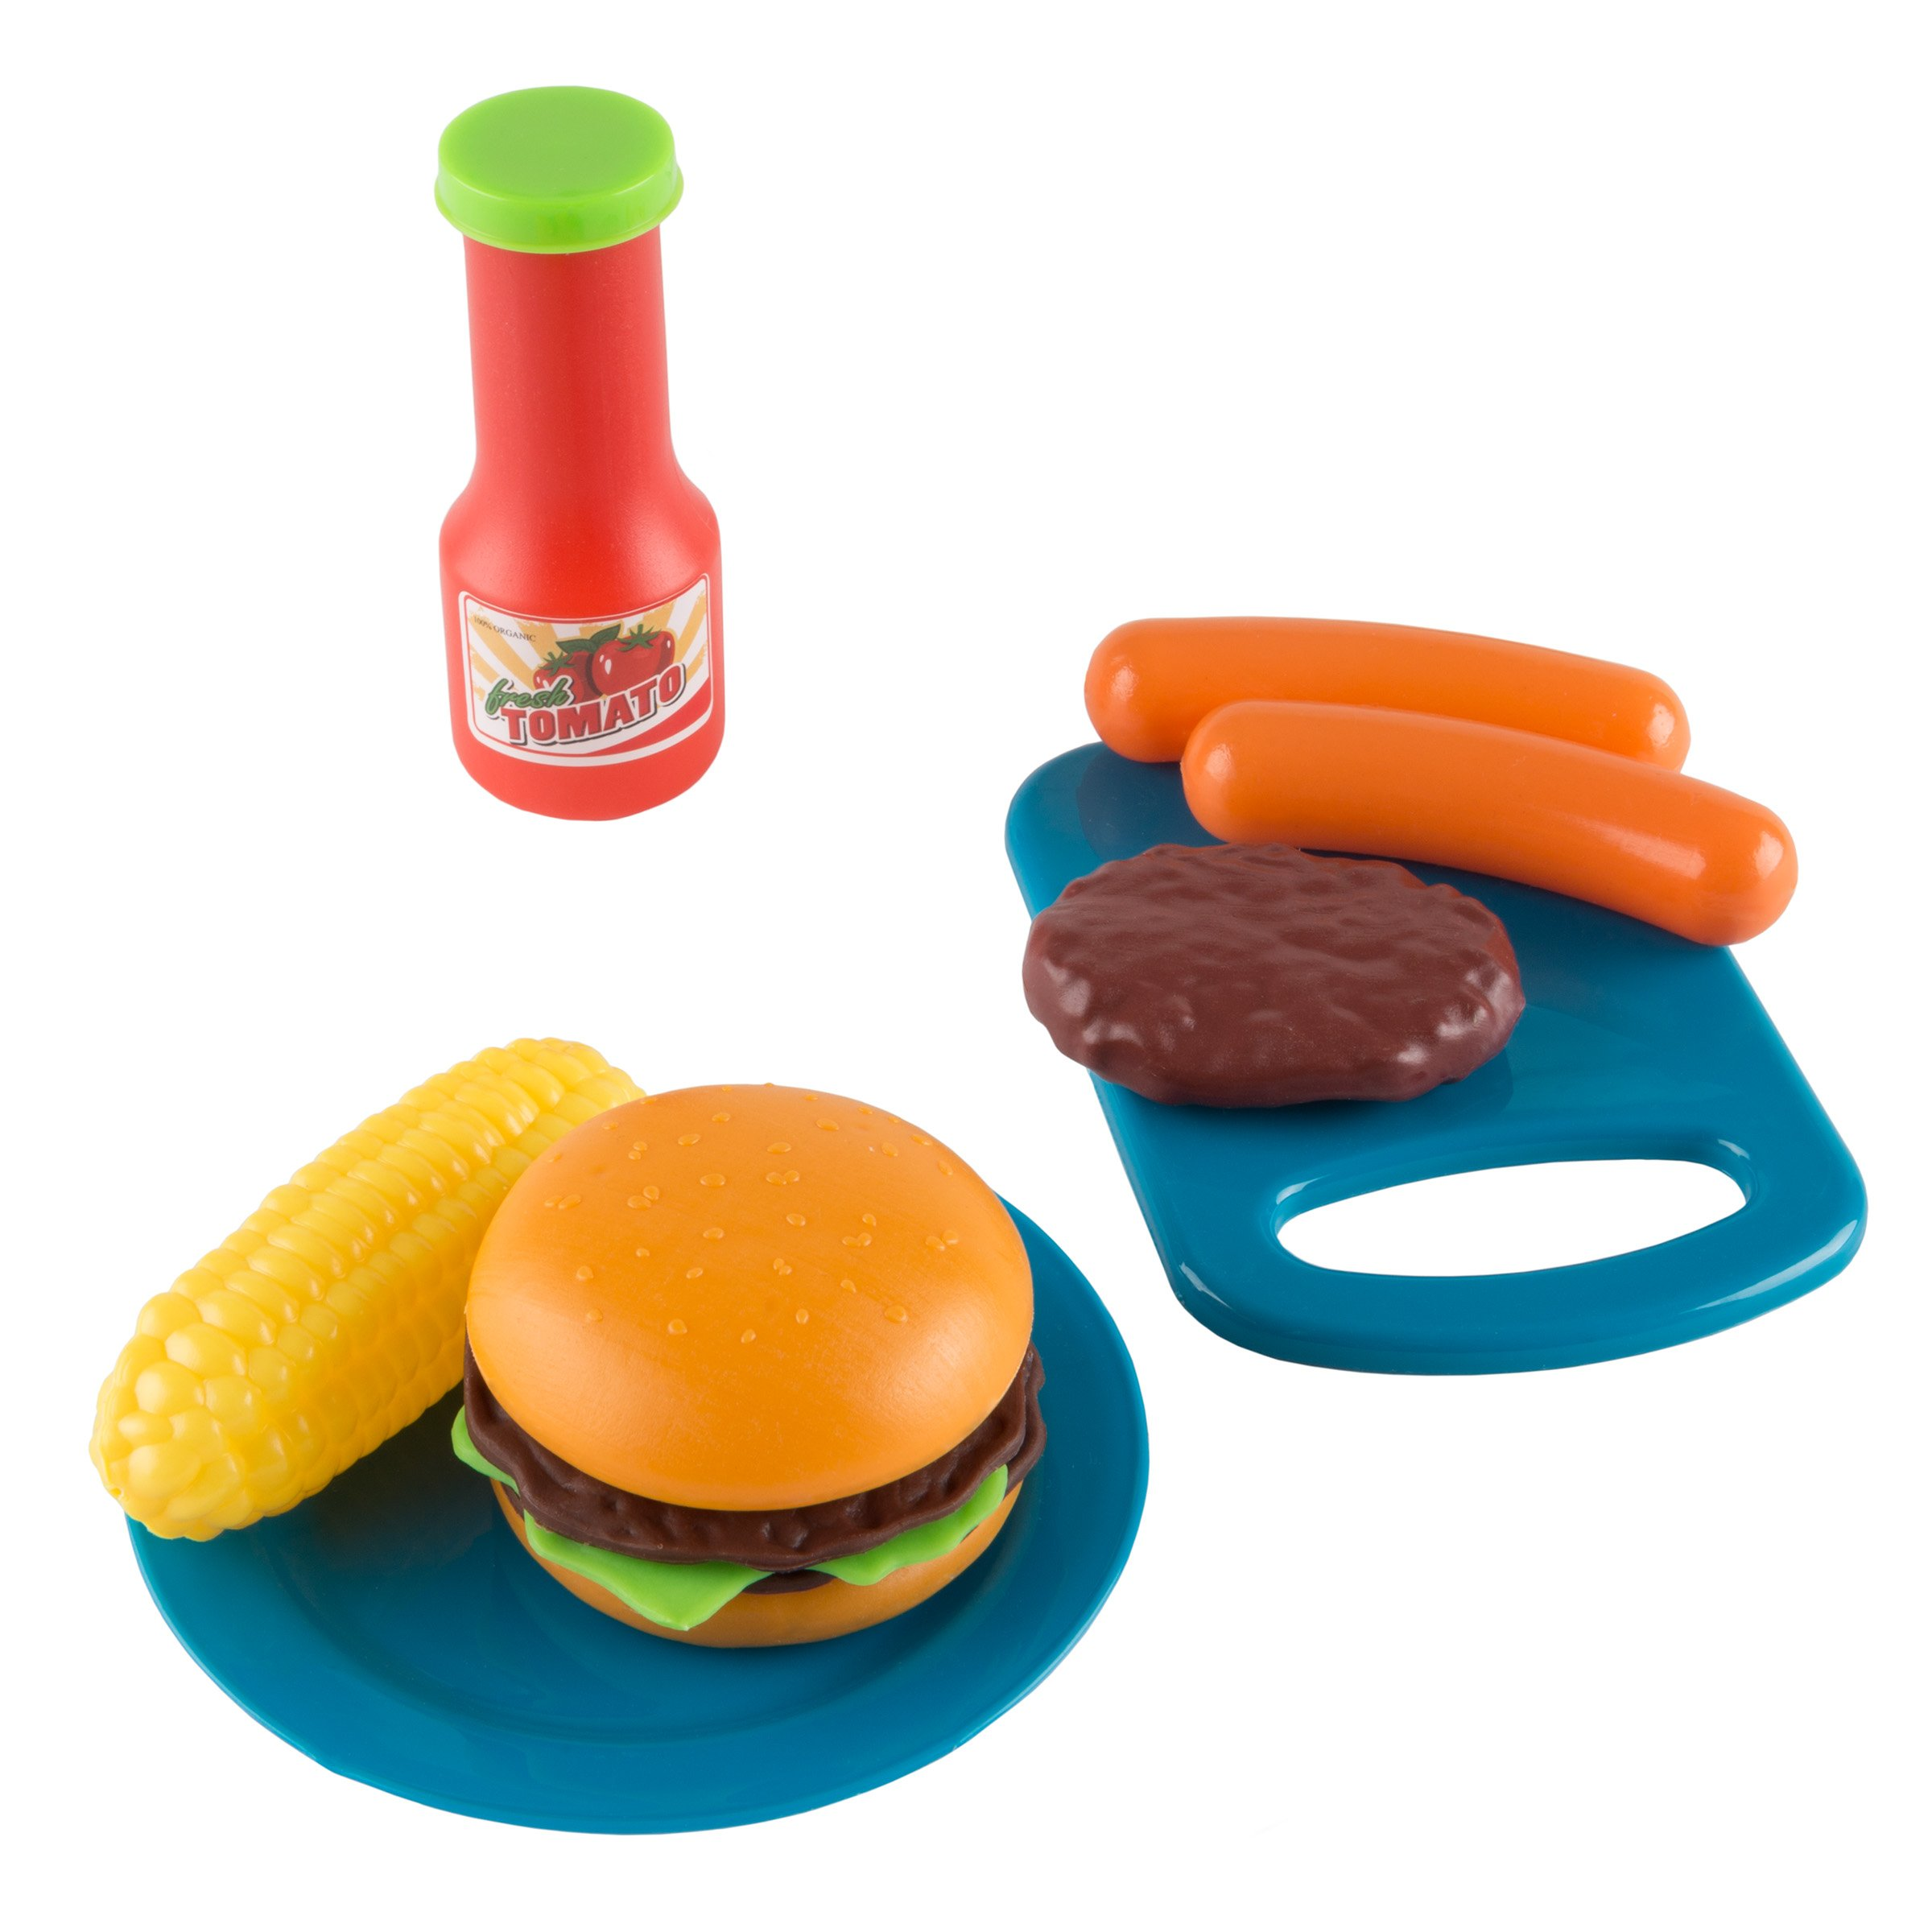 BBQ Grill Toy Set- Kids Dinner Playset with Realistic Sounds and Grate Lights- Includes Barbecue Food and Accessories, Pretend Kitchen by Hey! Play! (Image #5)